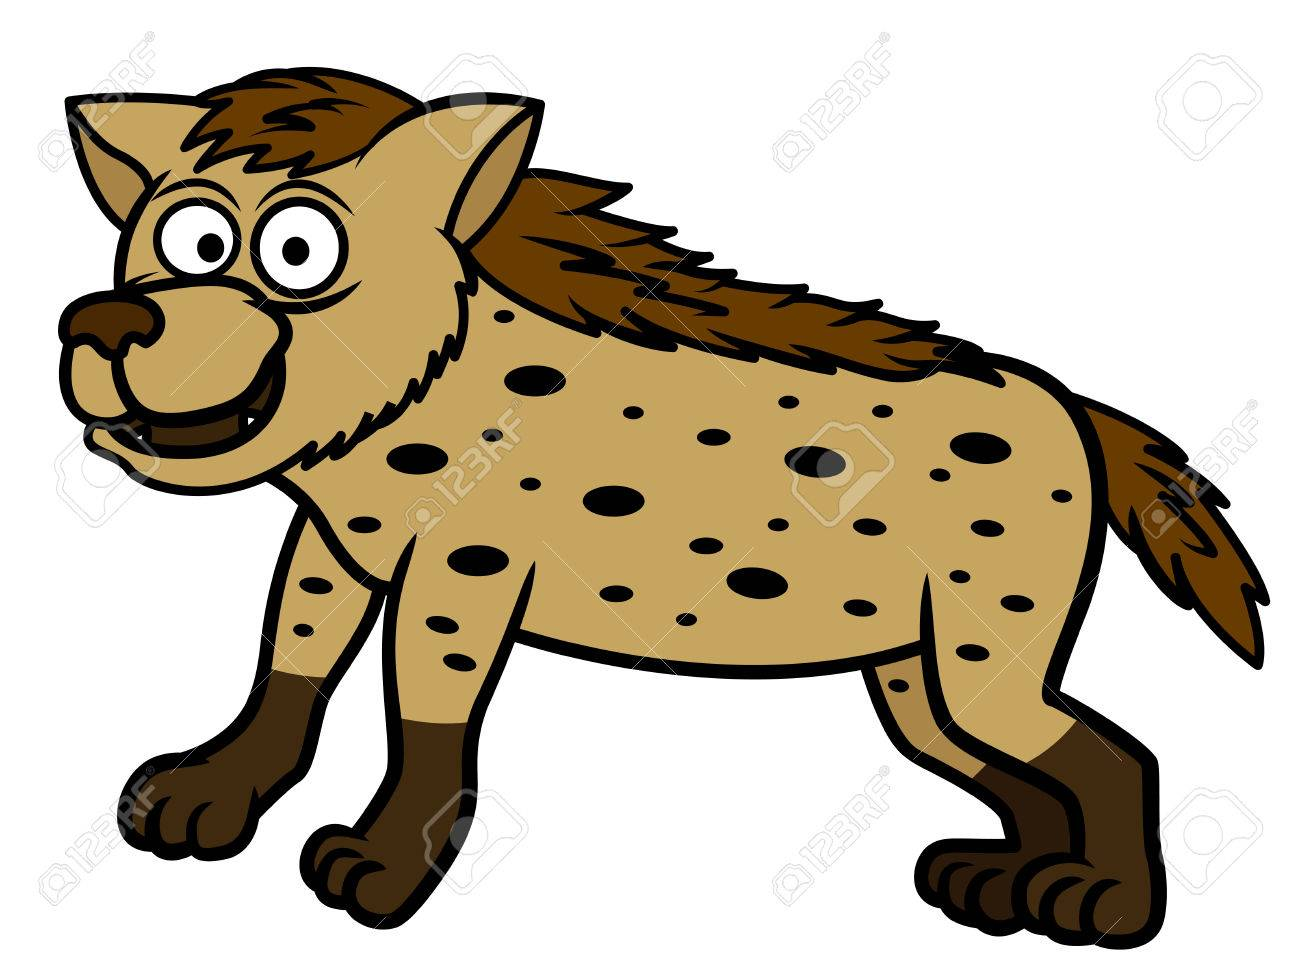 hyena cartoon royalty free cliparts vectors and stock illustration rh 123rf com  baby hyena clipart